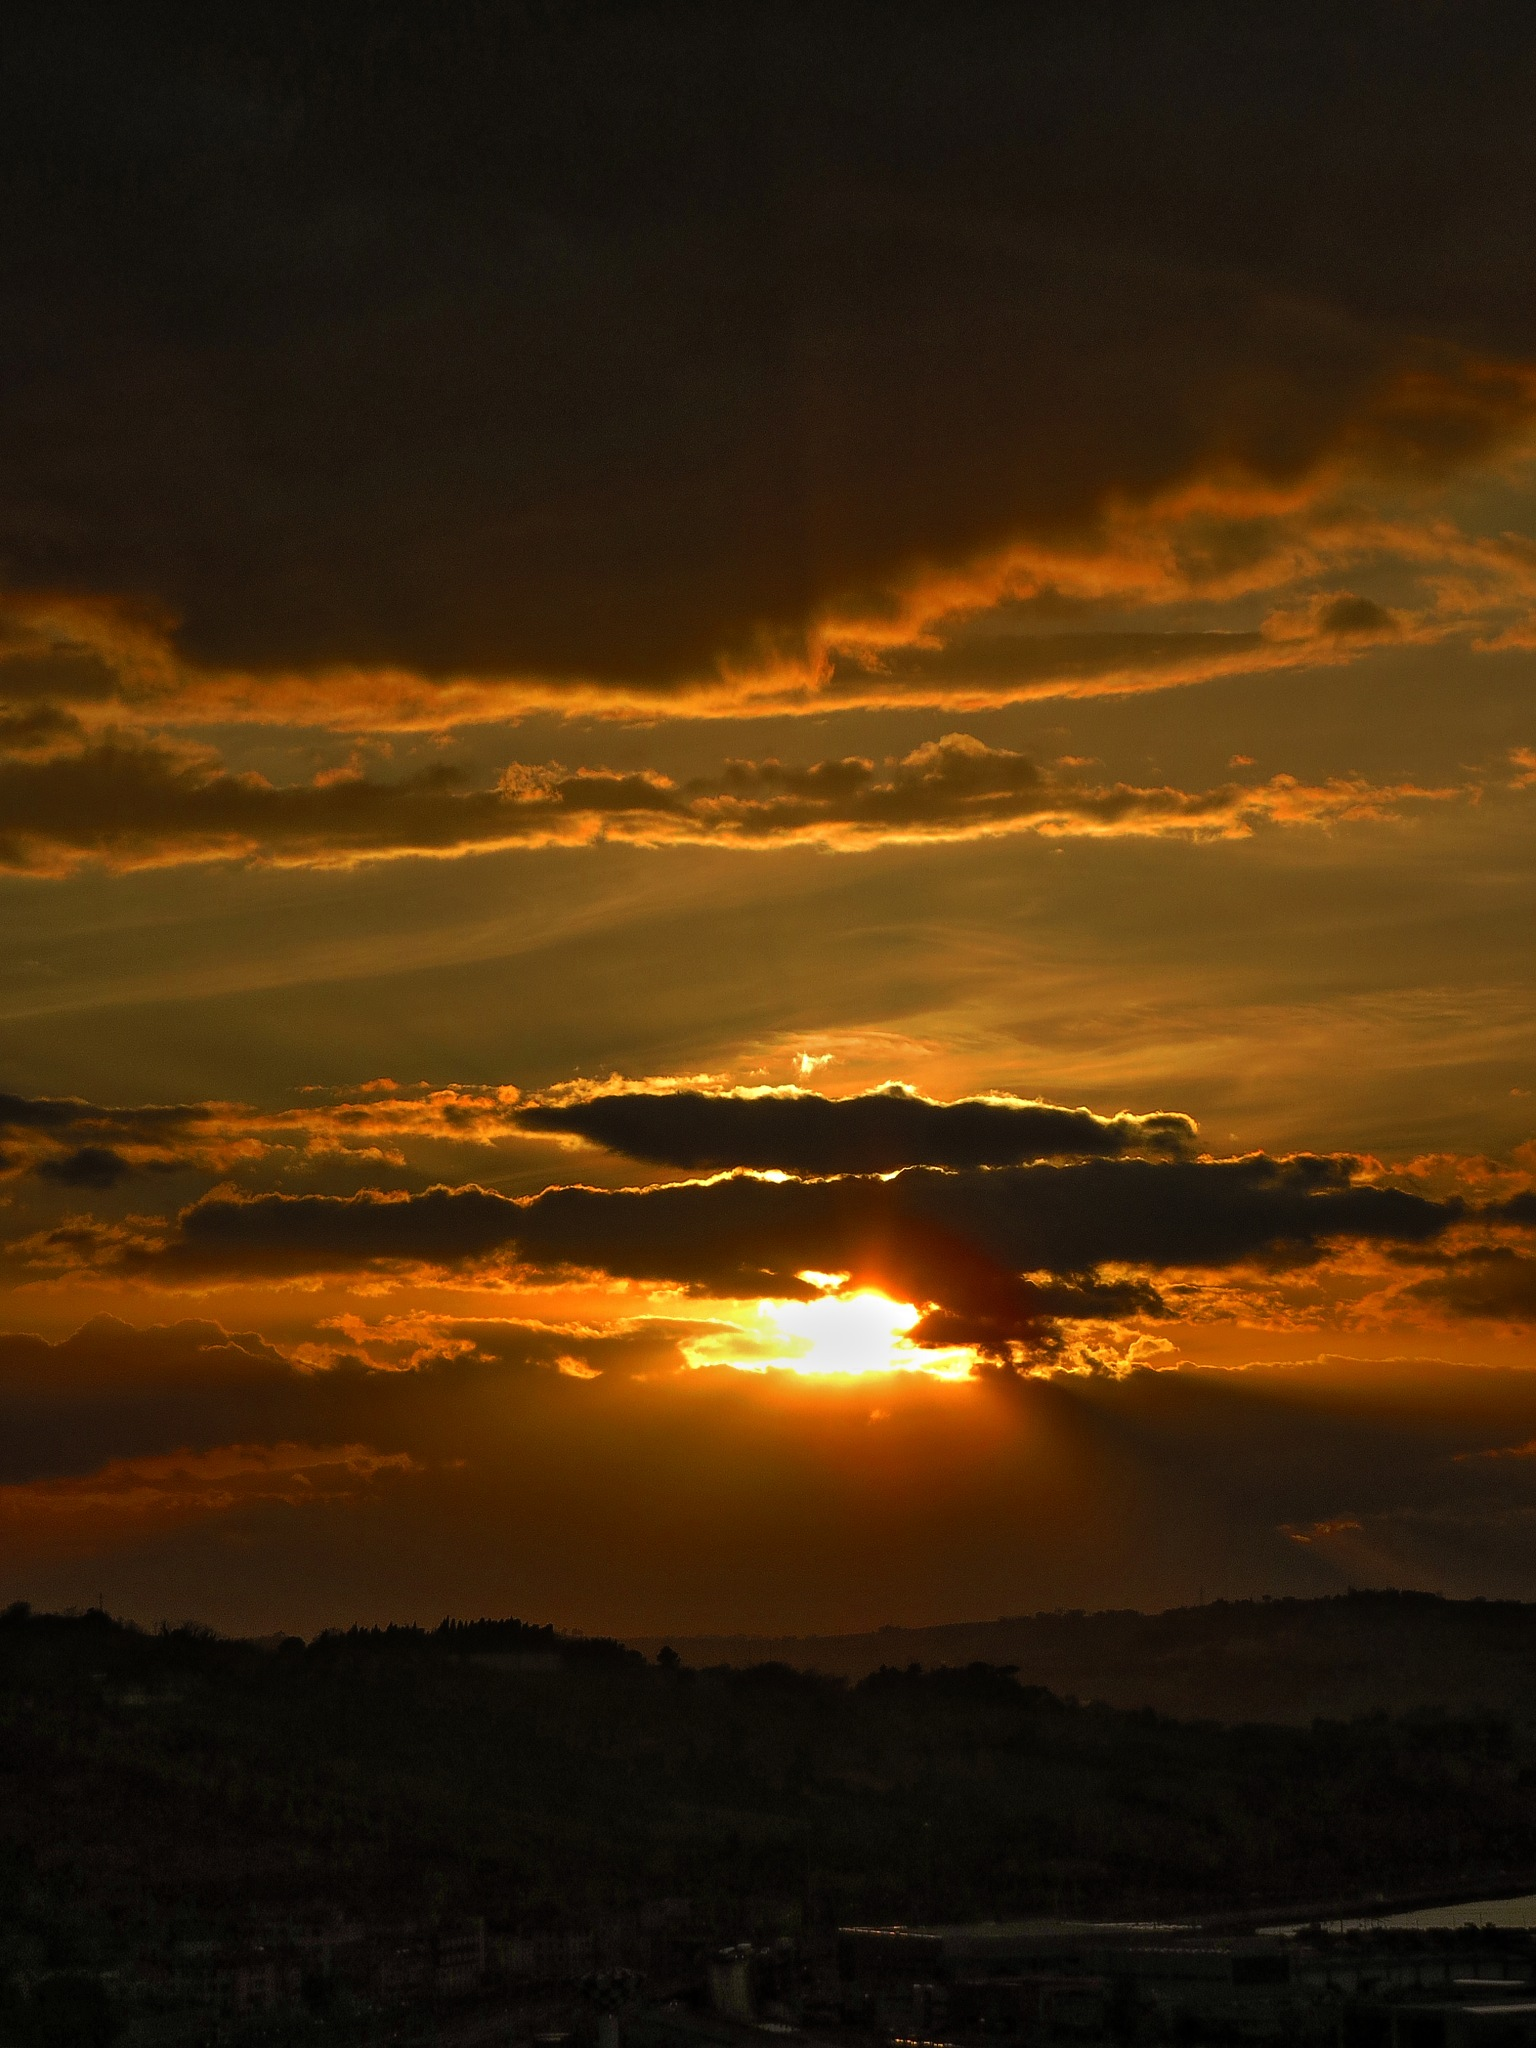 Ancona, Marche, Italy - Sunset in the clouds 3 by Gianni Del Bufalo CC BY-NC-SA by gianni del bufalo